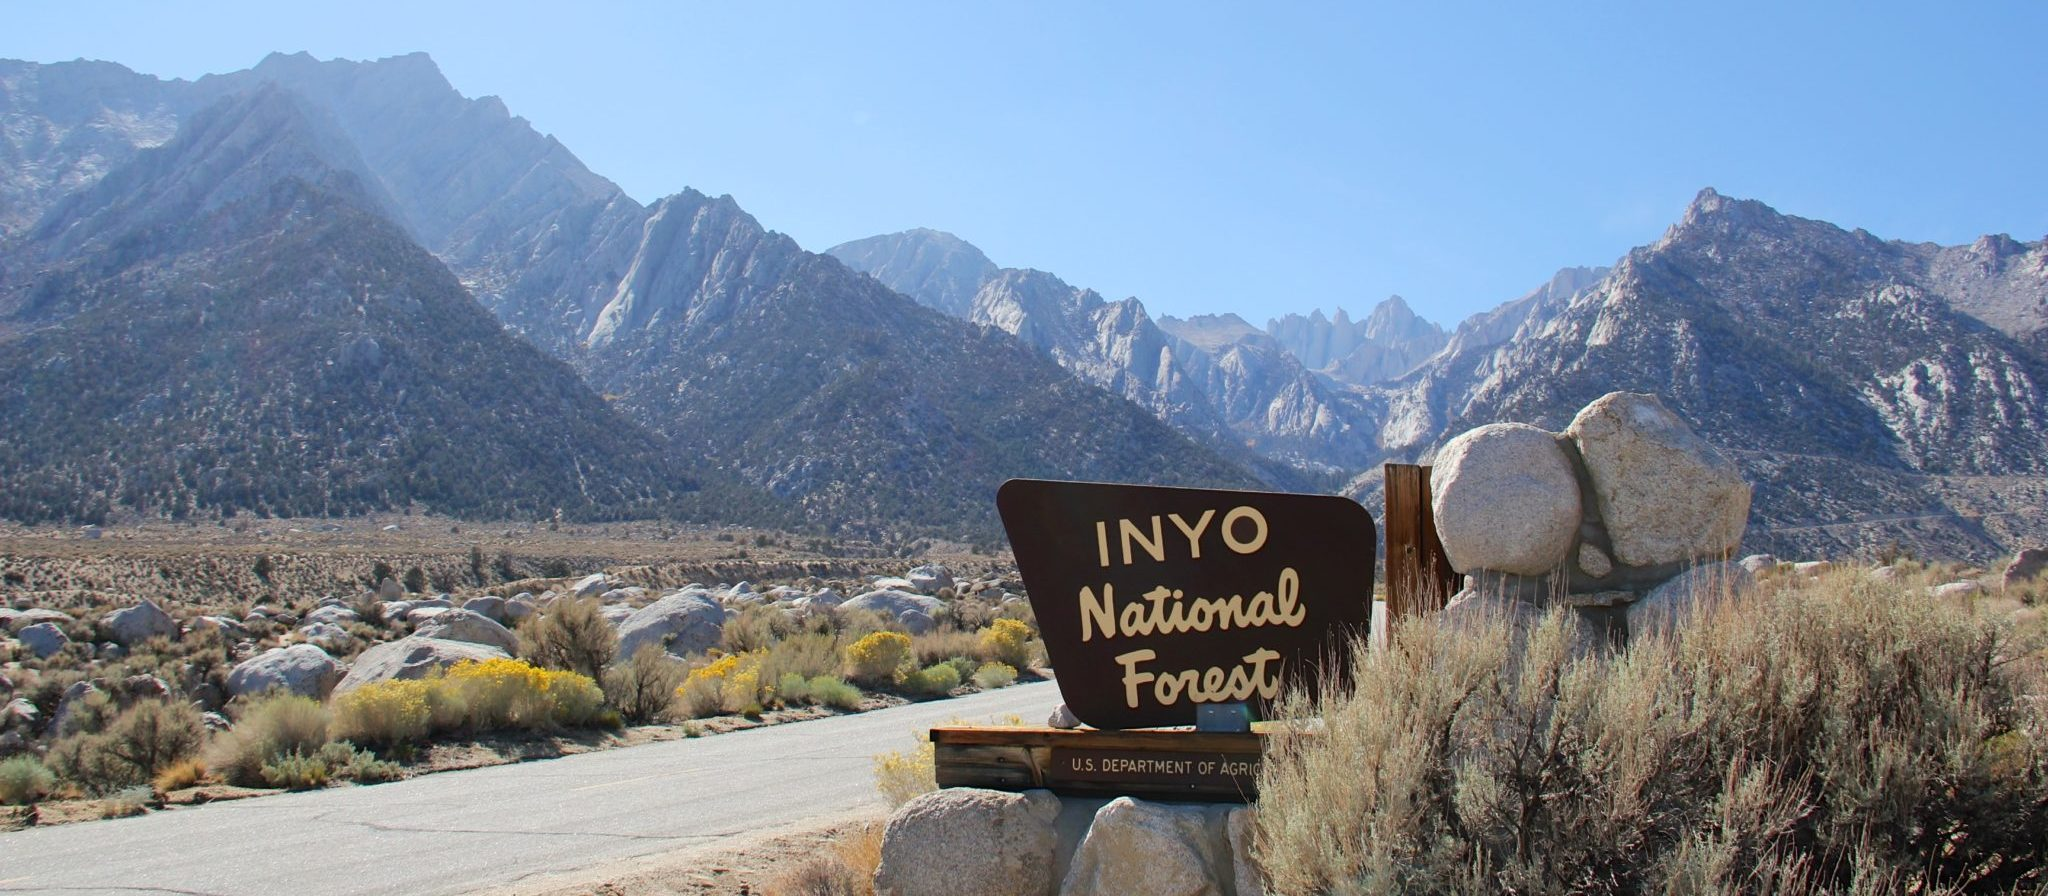 The vast area covered by the Inyo National Forest consists of forest, mountains, desert, lakes and more.